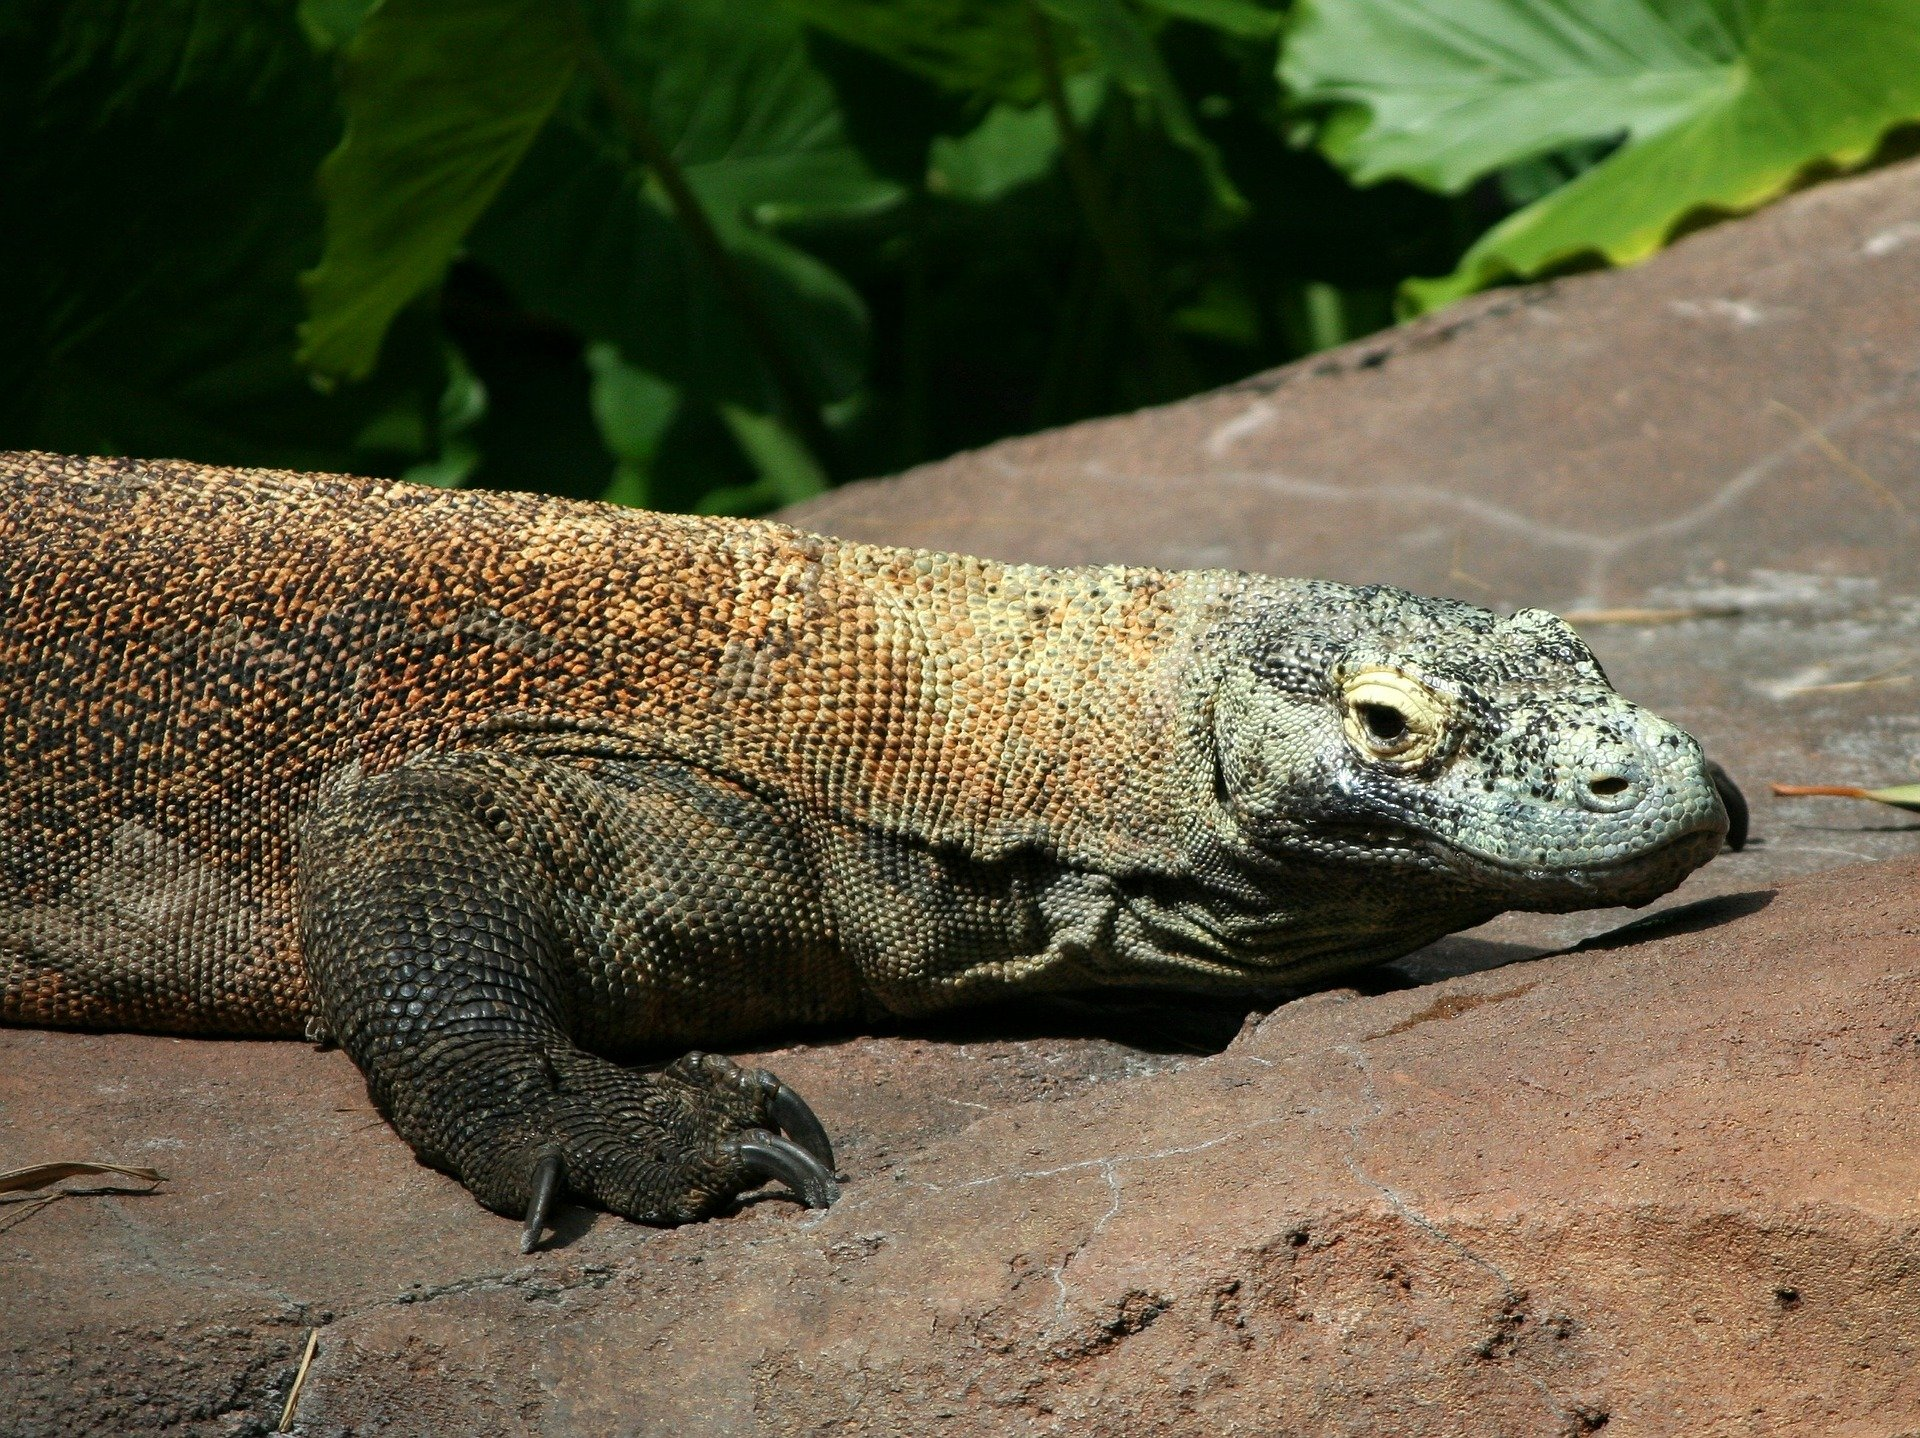 The Indonesian Government Closes Komodo Island Because People Are Stealing Its Dragons